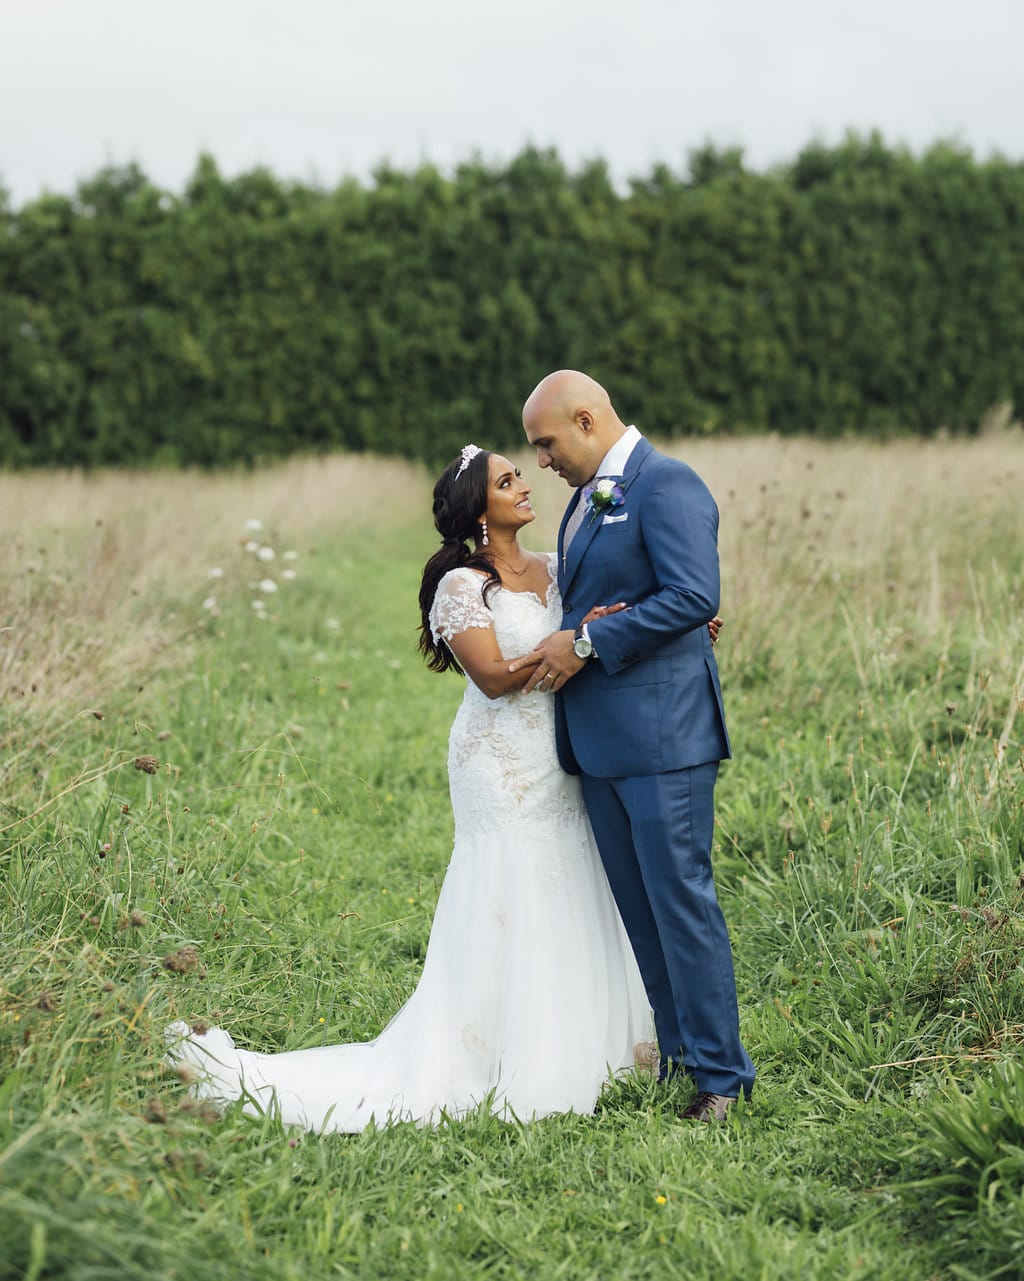 Real Weddings | Vinka Design | Real Brides Wearing Vinka Gowns | Shalini and Jayesh outdoor in open field face to face with train flowing to the side